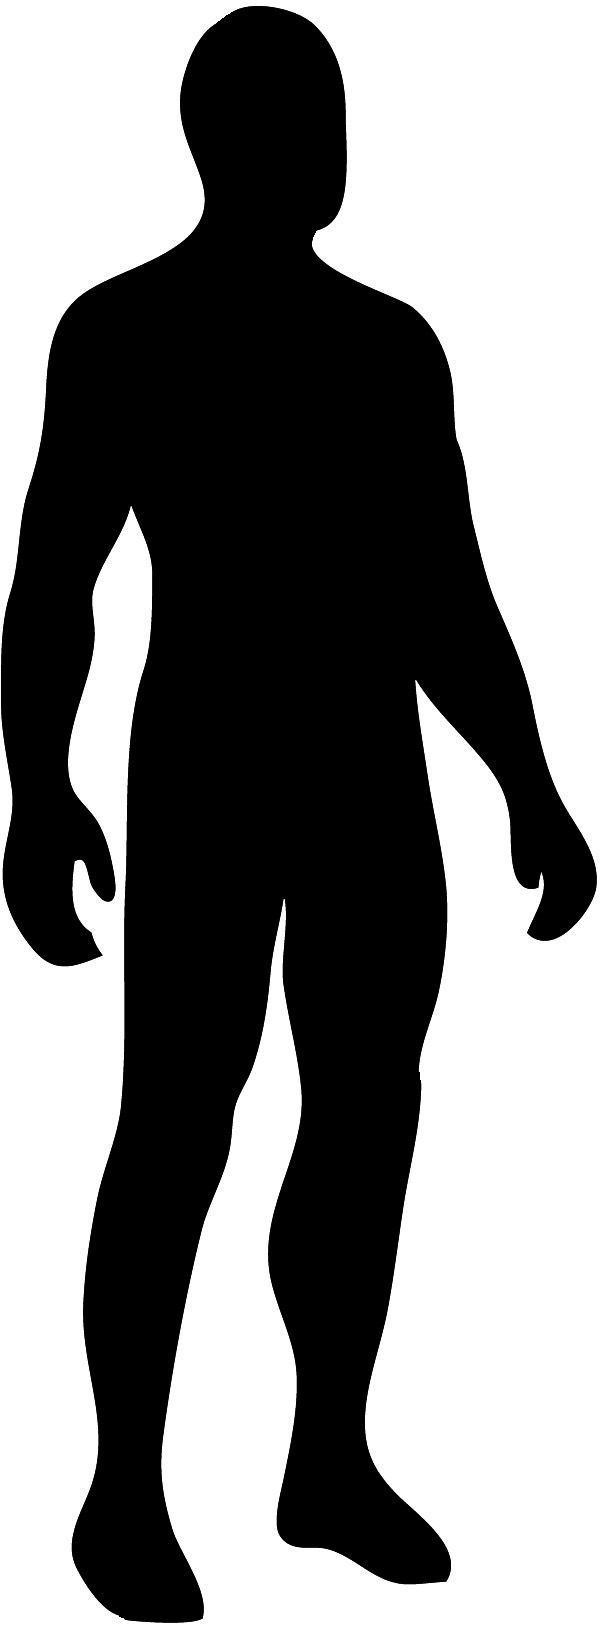 human silhouette clipart stams stencils masks pinterest rh pinterest co uk clipart 3d human human eye clipart